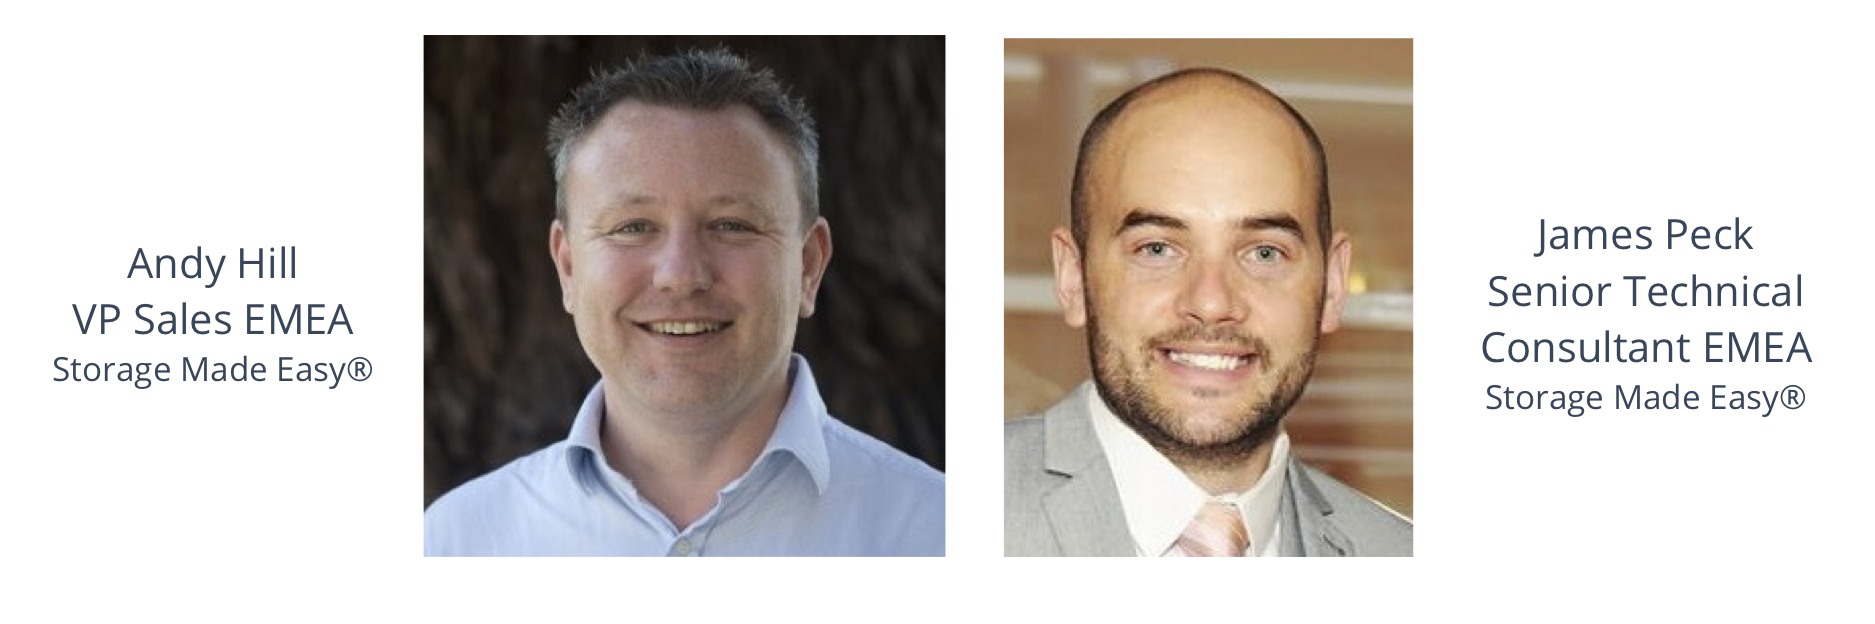 In Response to Accelerating Customer Sales, Storage Made Easy Appoints a New EMEA VP Sales